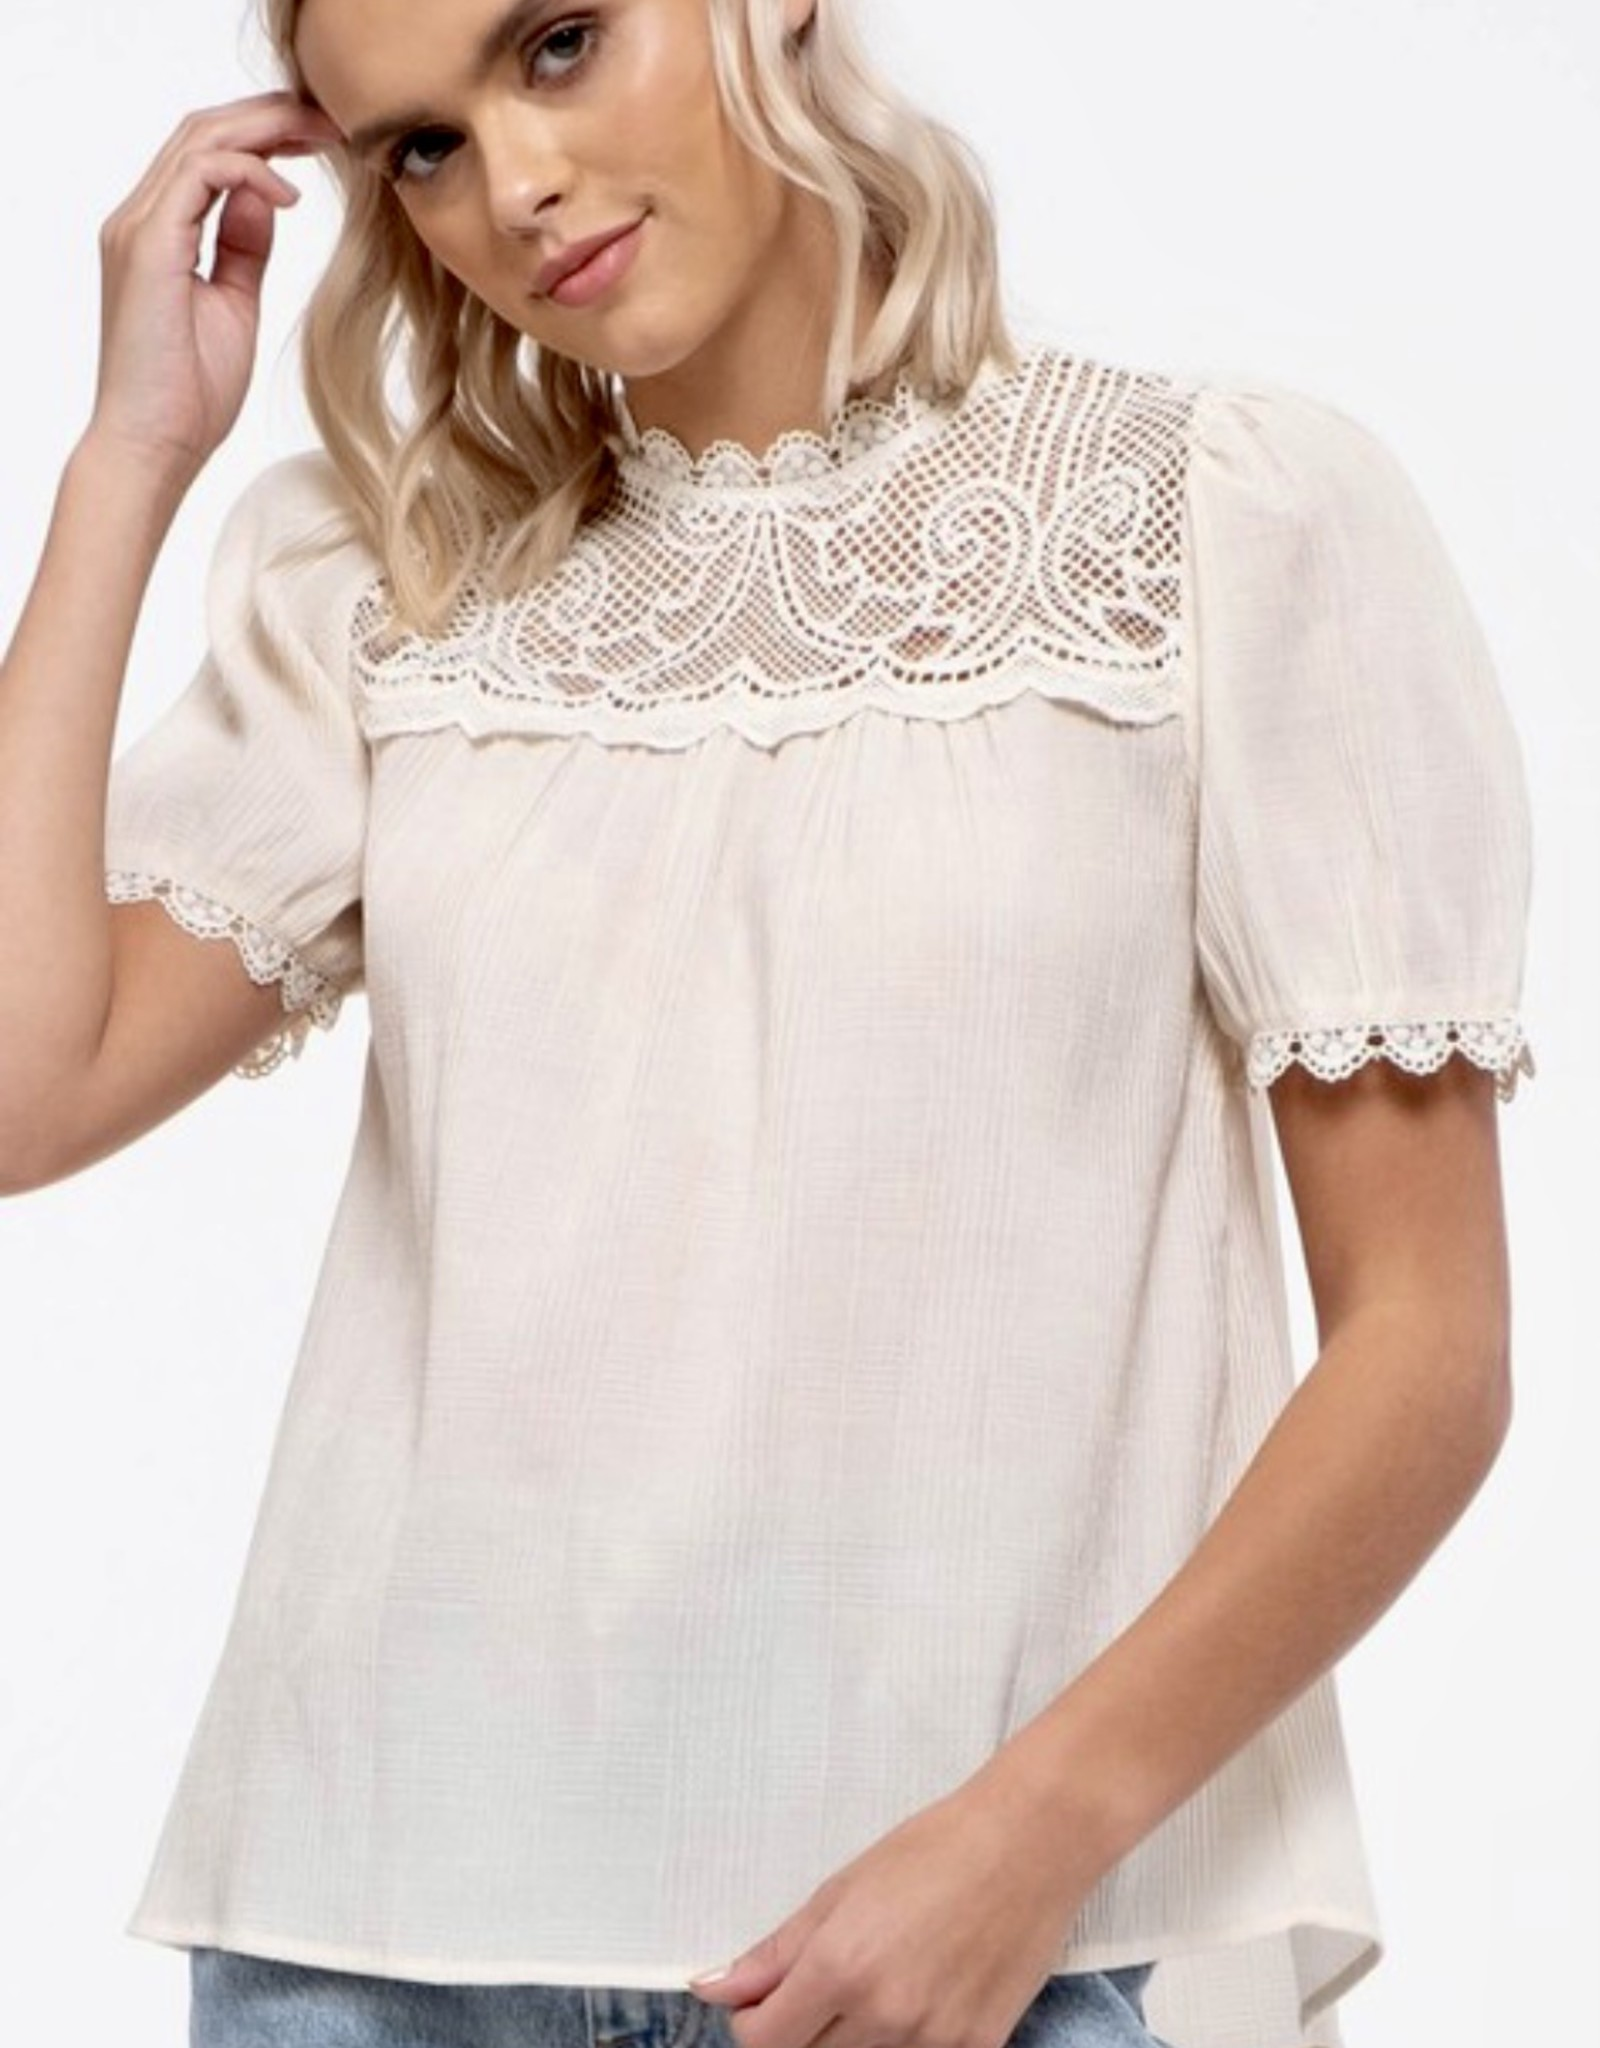 HUSH Detailed lace inset blouse w/ puff sleeves